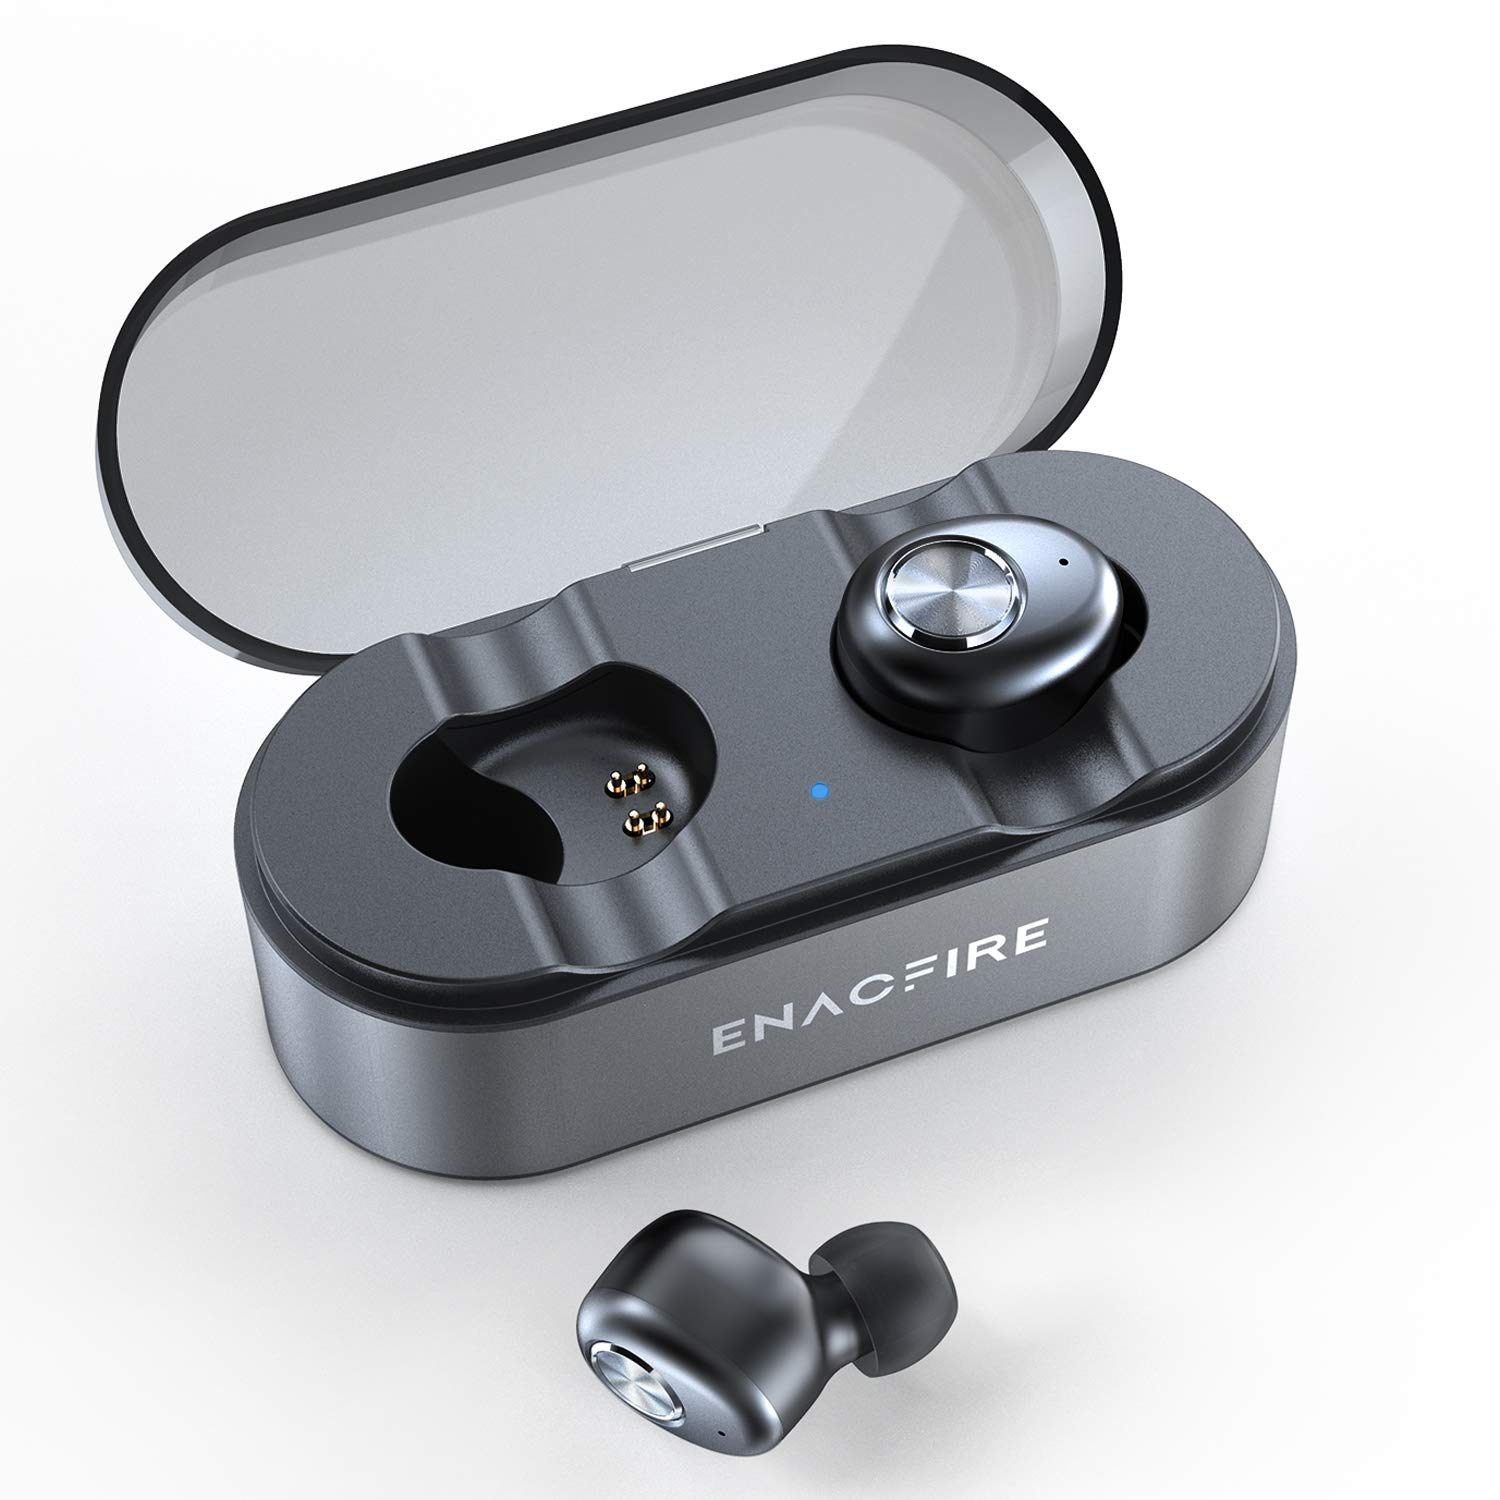 ENACFIRE E18 Plus Wireless Earbuds with Wireless Charging Case CVC8.0 3D Stereo Sound Deep Bass 8H Non-Stop Playtime IPX7 Waterproof Bluetooth Earbuds by ENACFIRE